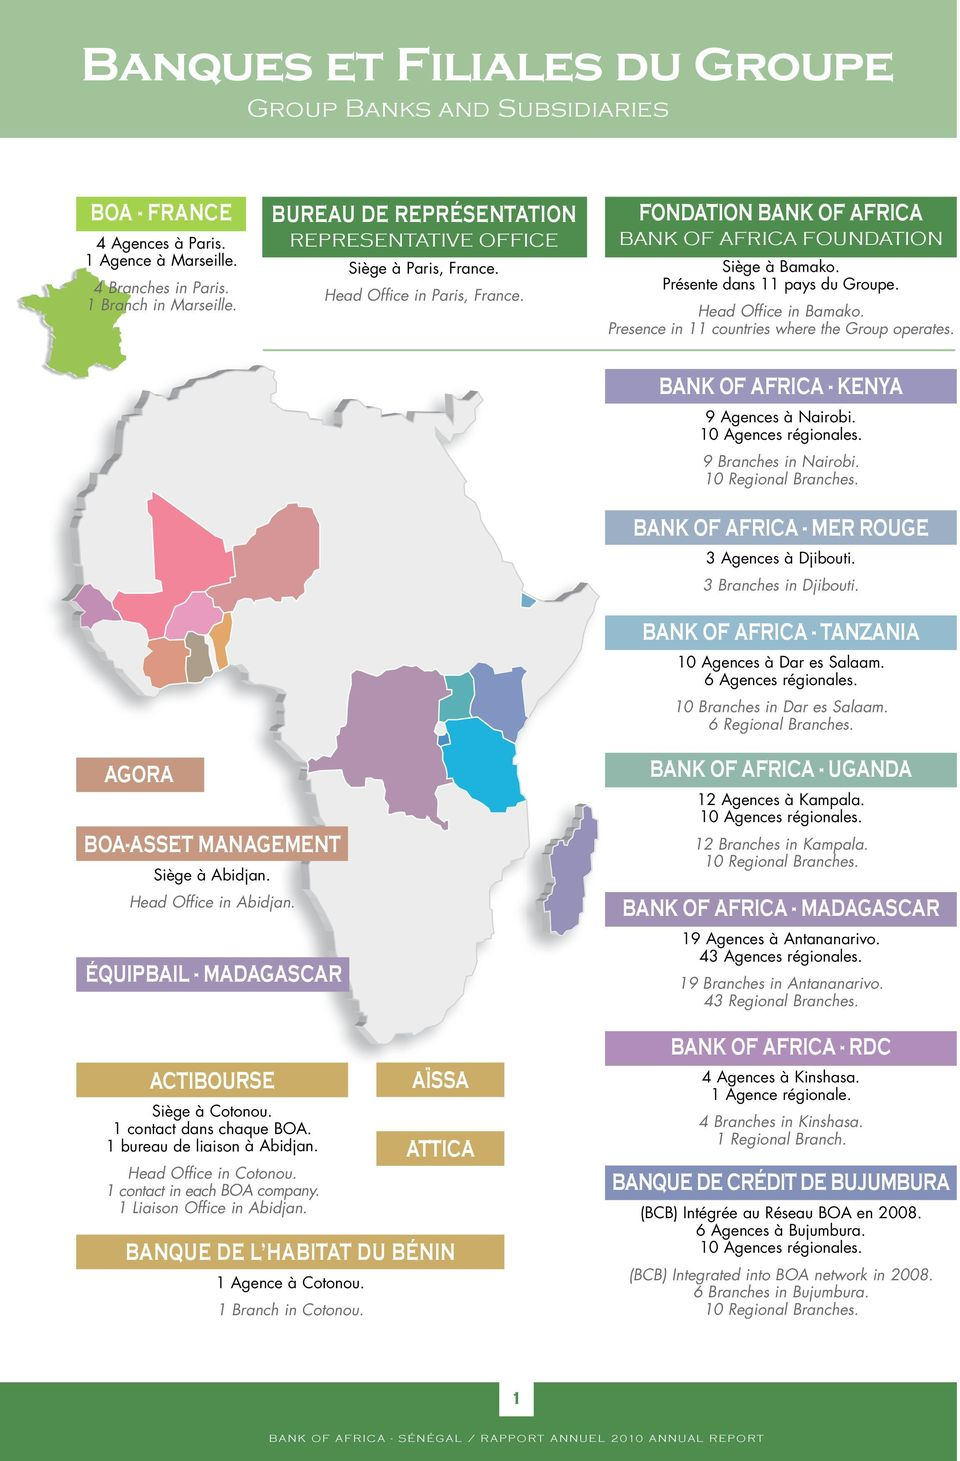 Head Office in Bamako. Presence in 11 countries where the Group operates. BANK OF AFRICA - KENYA 9 Agences à Nairobi. 10 Agences régionales. 9 Branches in Nairobi. 10 Regional Branches.